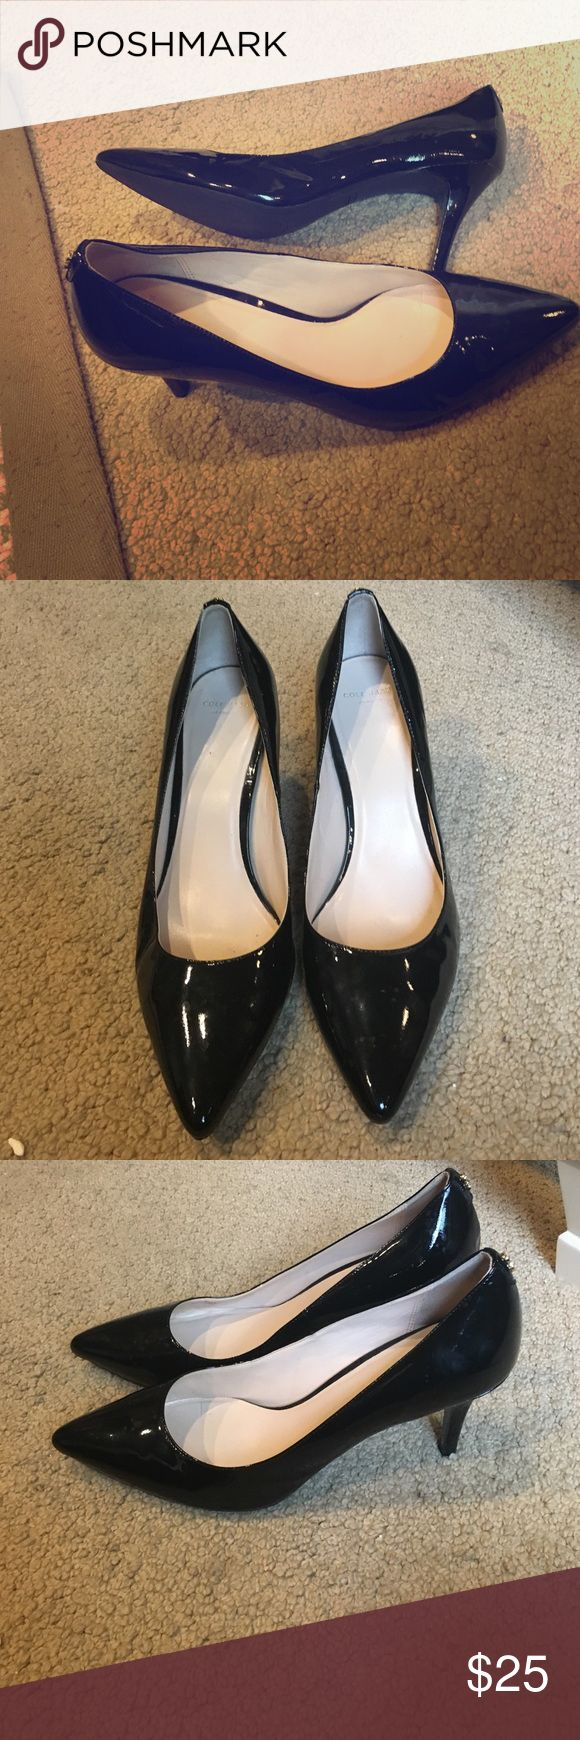 "Cole Hann Black Patent Leather Pumps Super cute Cole Haan black heels. Probably about 3"". Maybe worn 1-2 times max. In perfect condition. Cute little gold piece on the back of the heel. Very classy and go with everything. Cole Haan Shoes Heels"